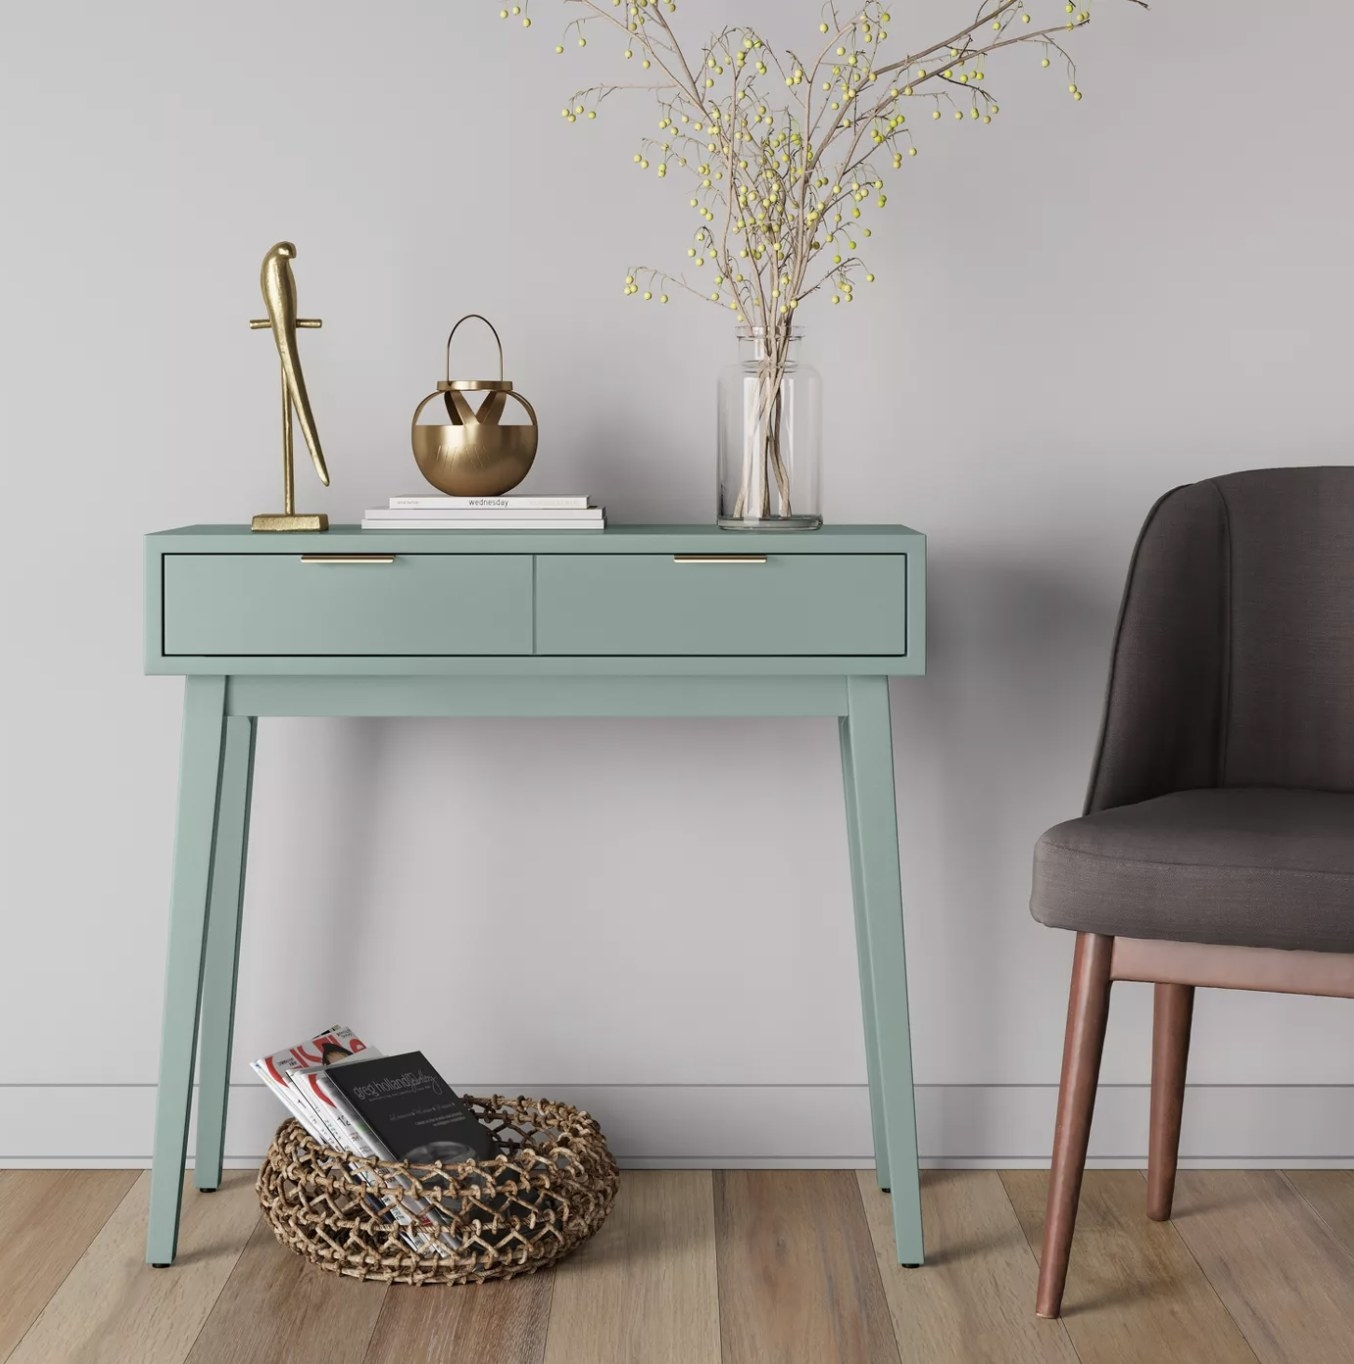 The pale green console table